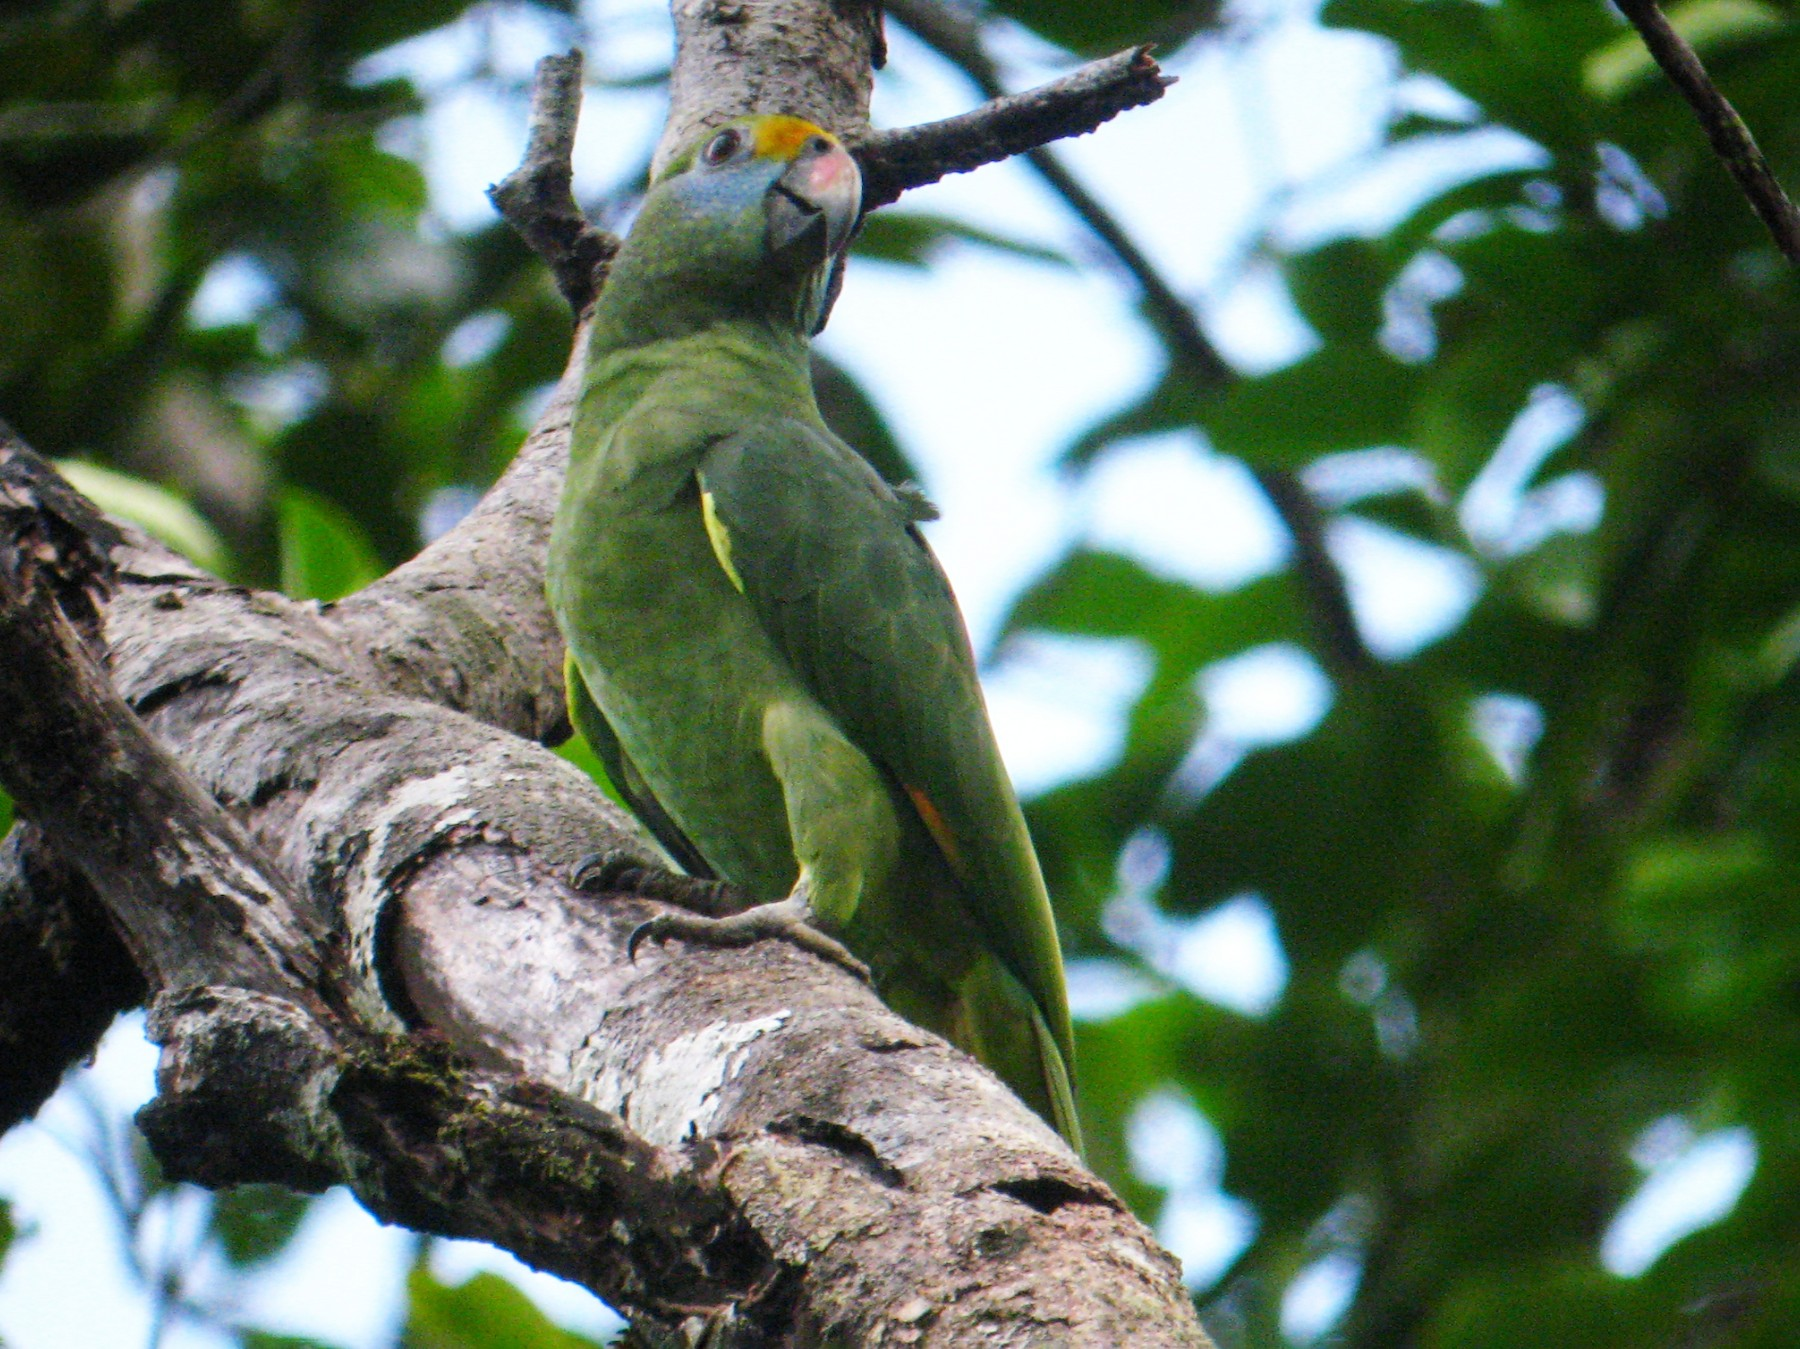 Blue-cheeked Parrot - David Ascanio